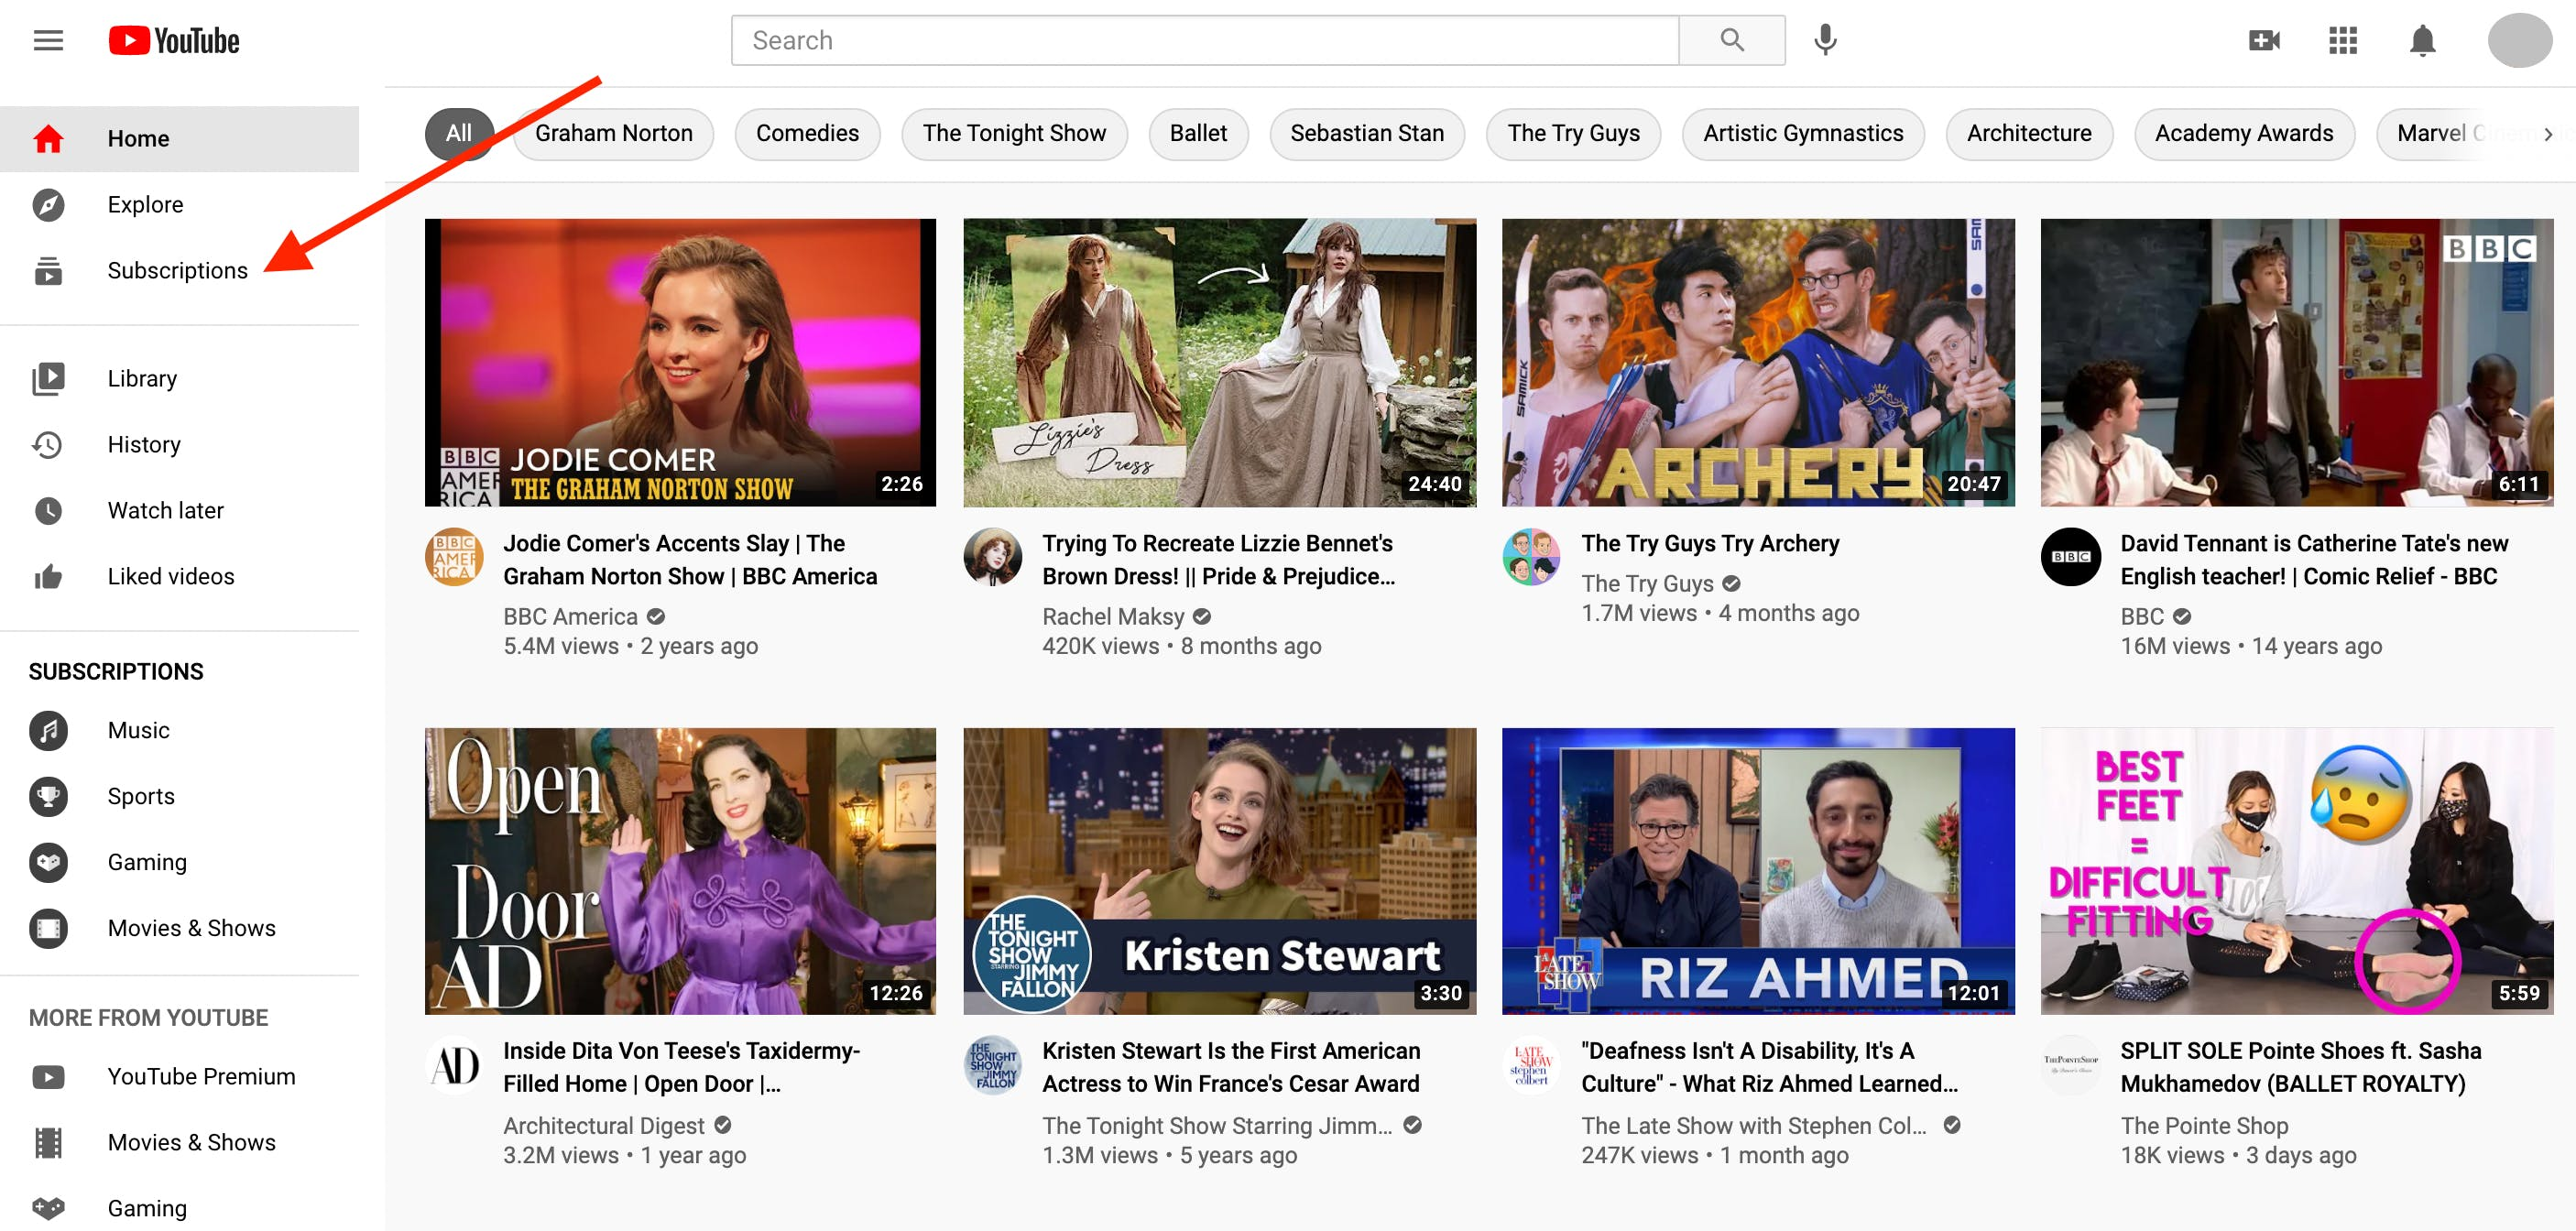 Arrow pointing to subscription button on YouTube homepage, from which you can access a view of all the channels you've subscribed to